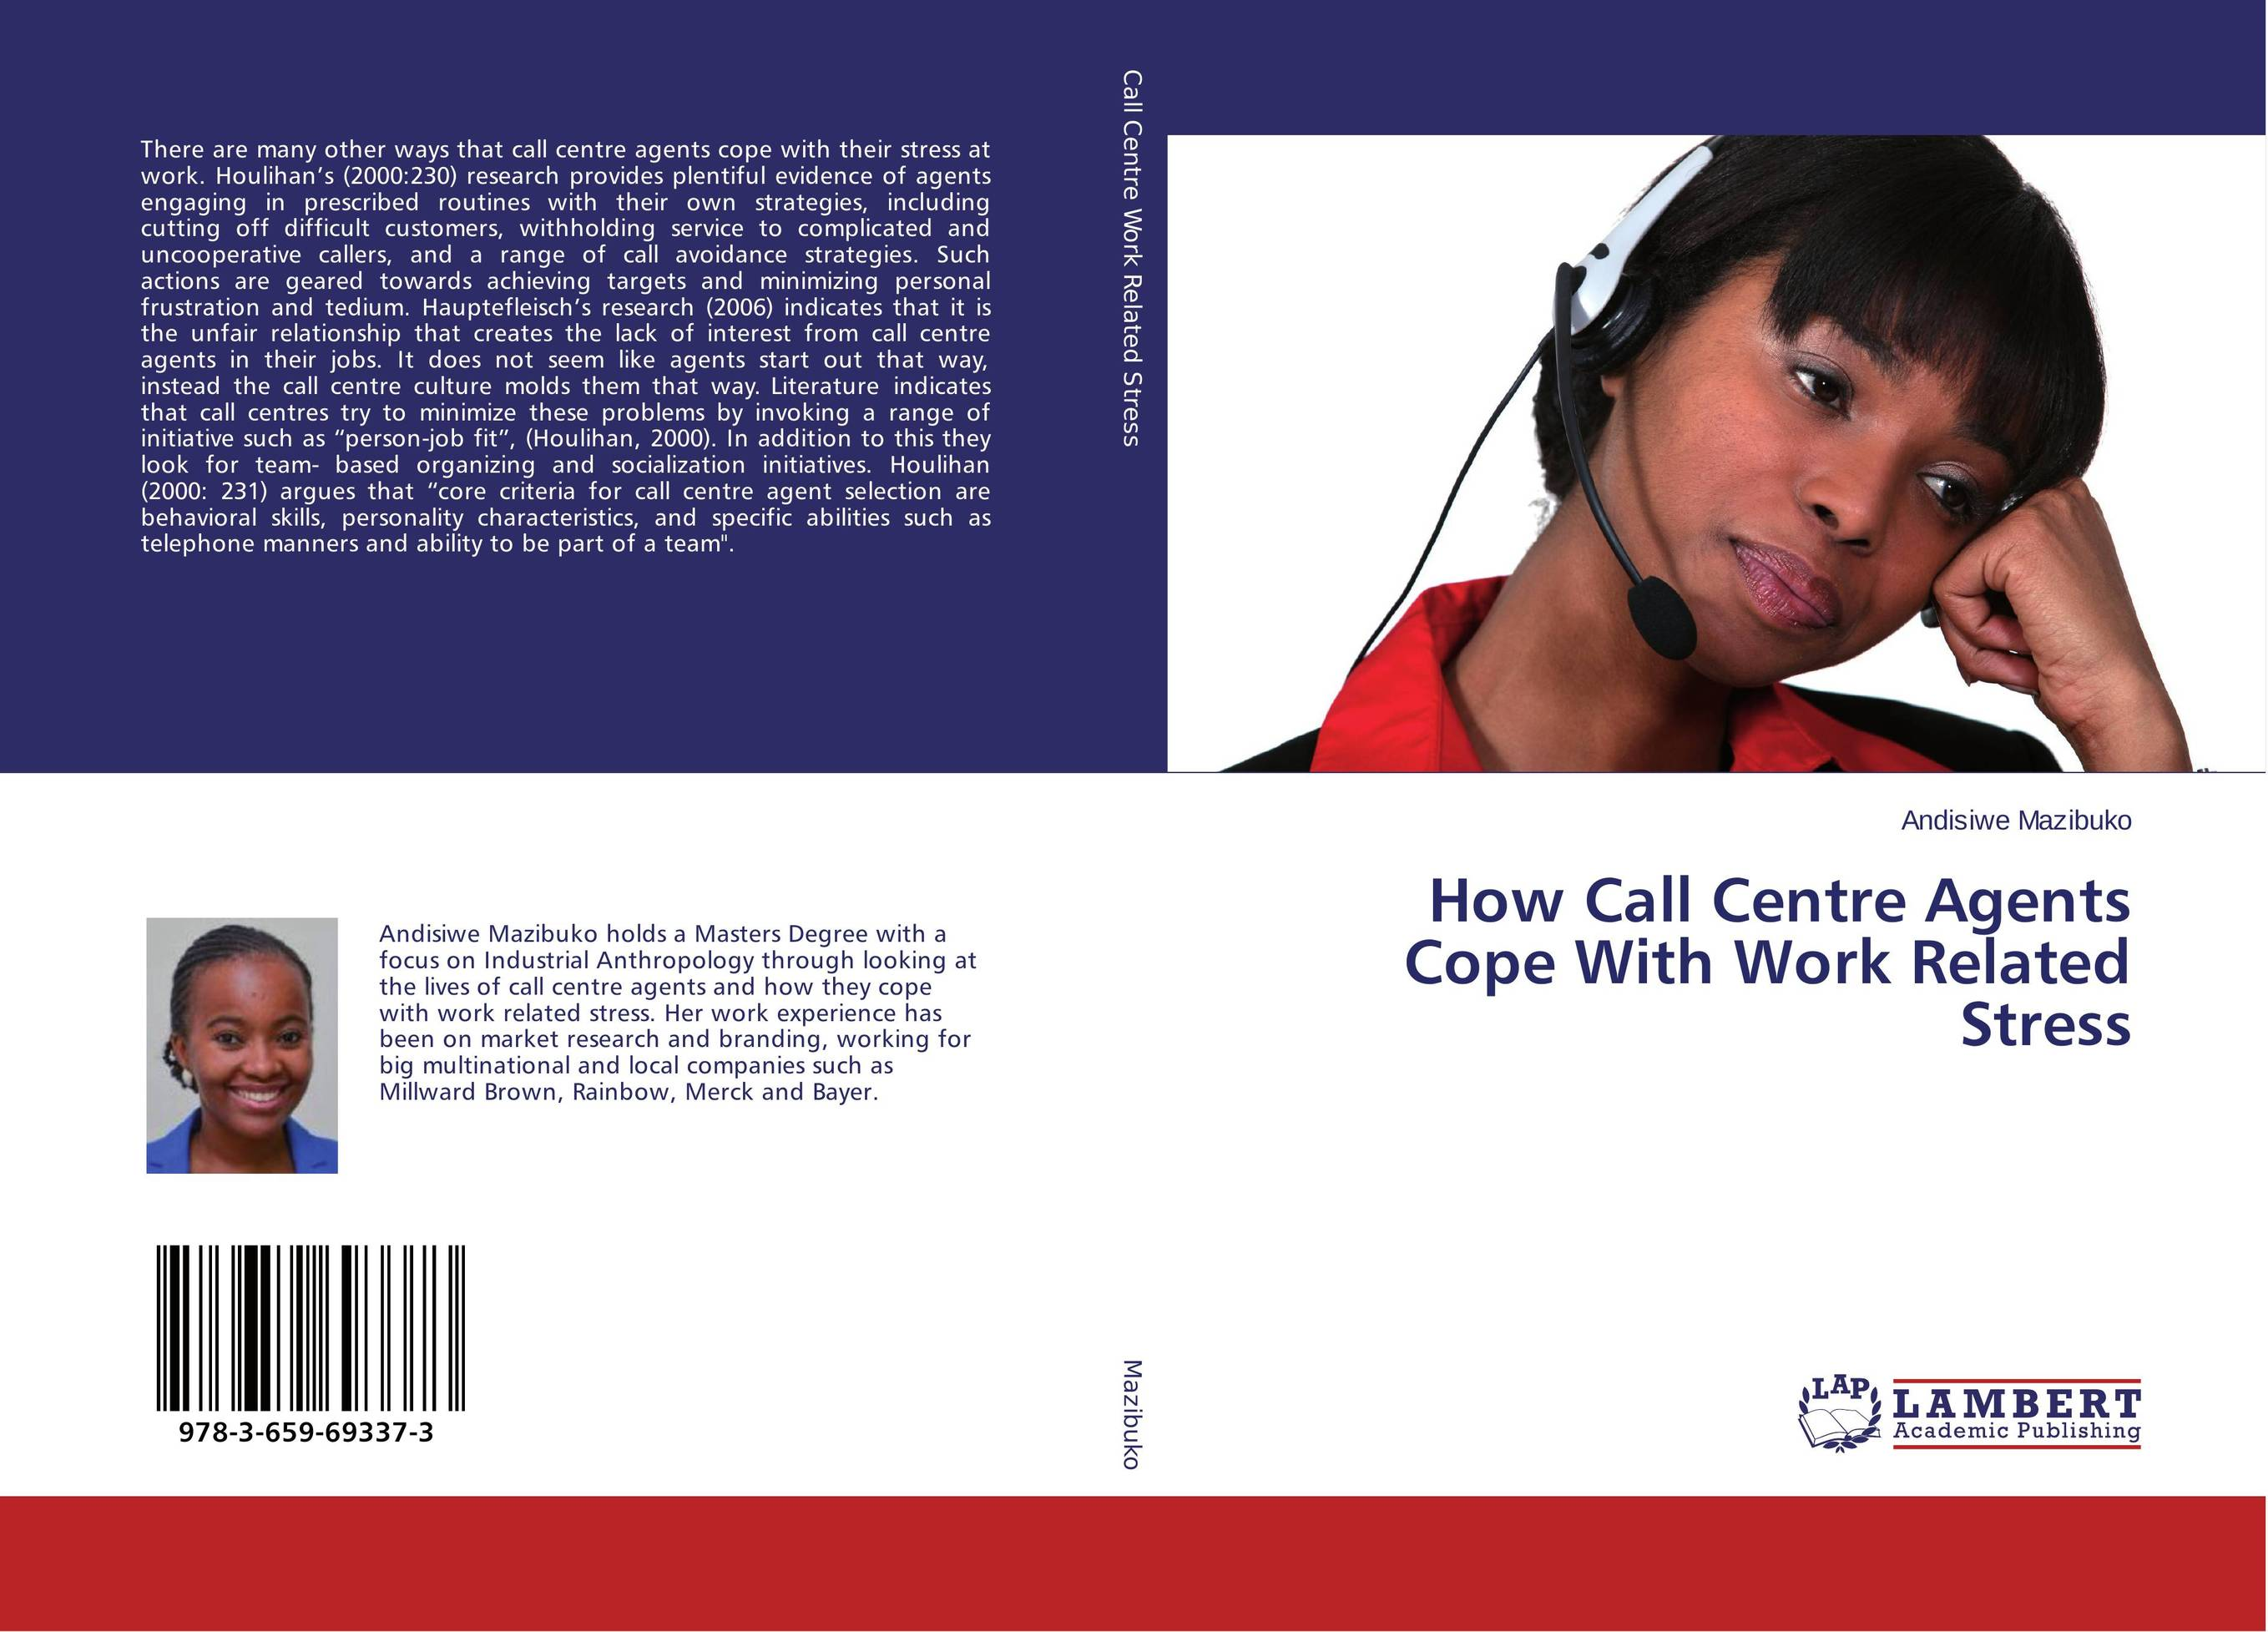 How Call Centre Agents Cope With Work Related Stress maximilian gaynesford de agents and their actions